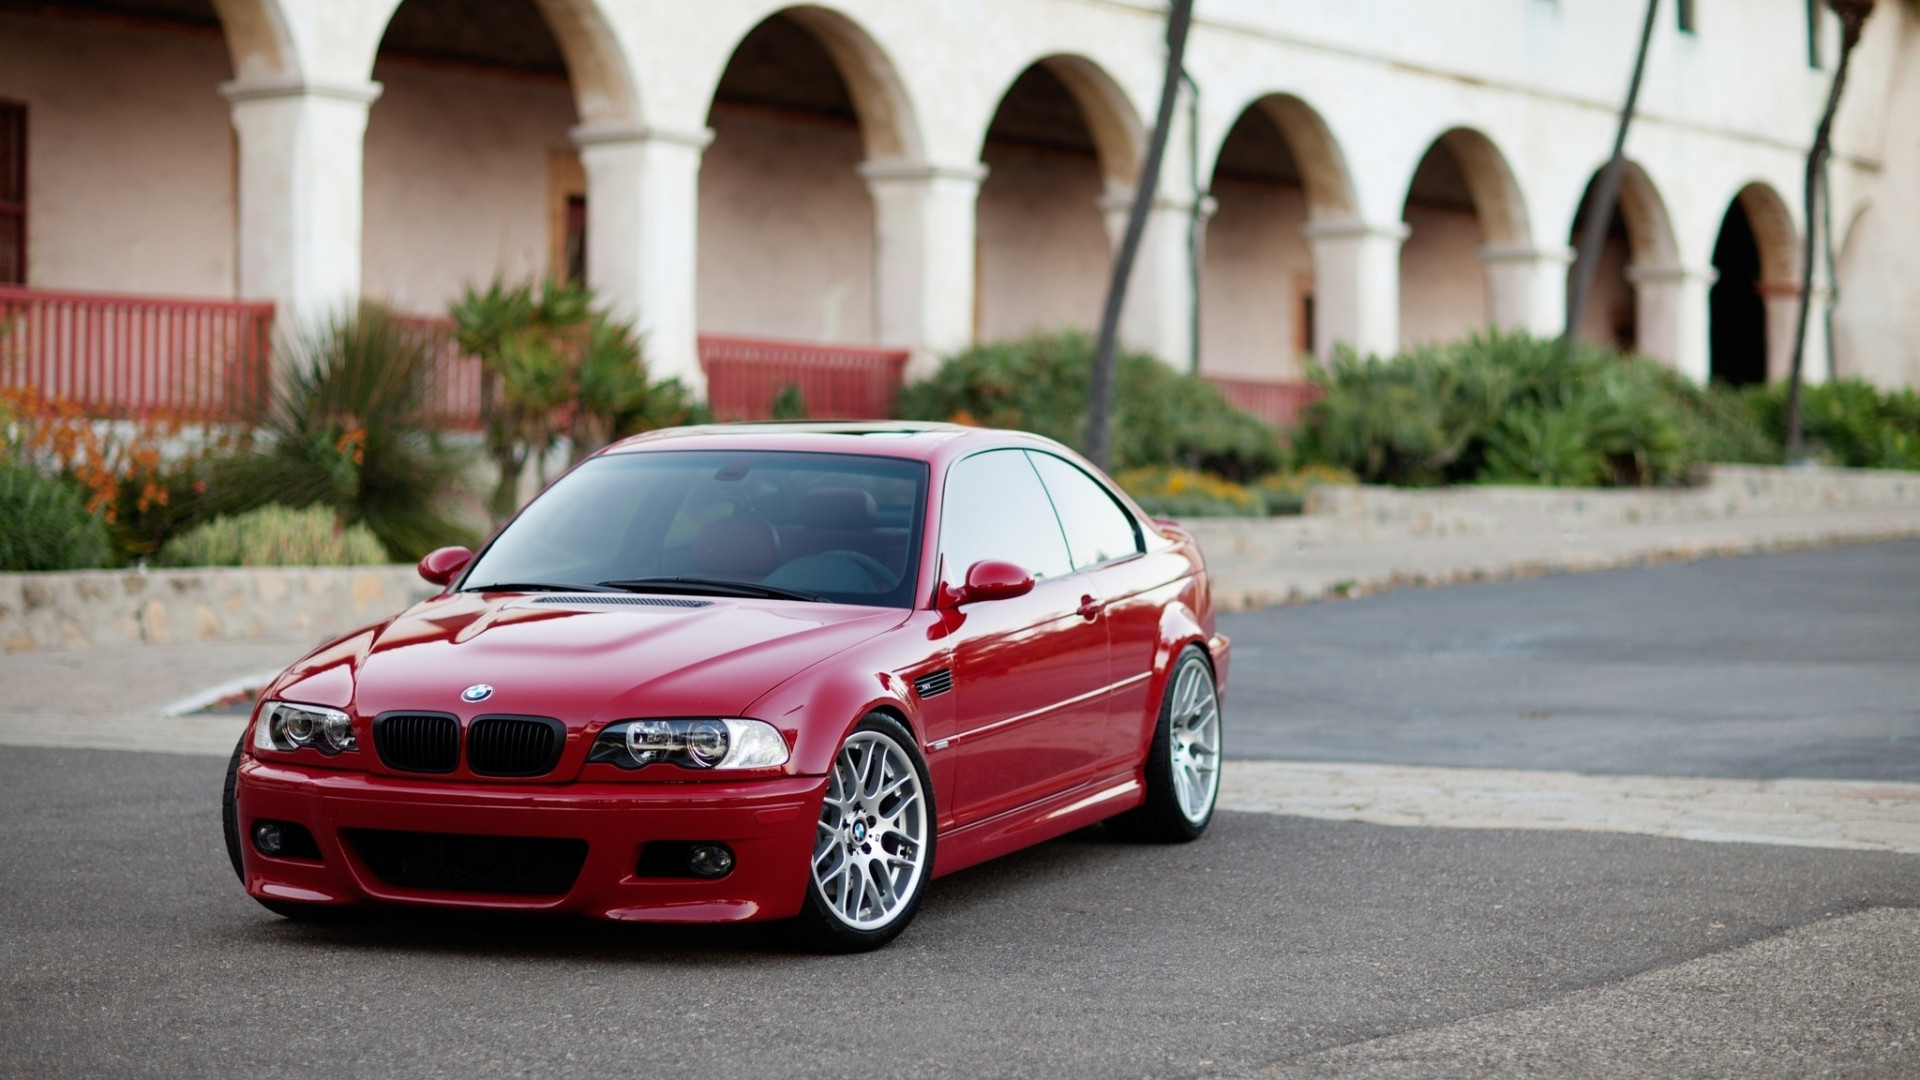 1920x1080 Preview wallpaper building, coupe, red, e46, bmw, m3